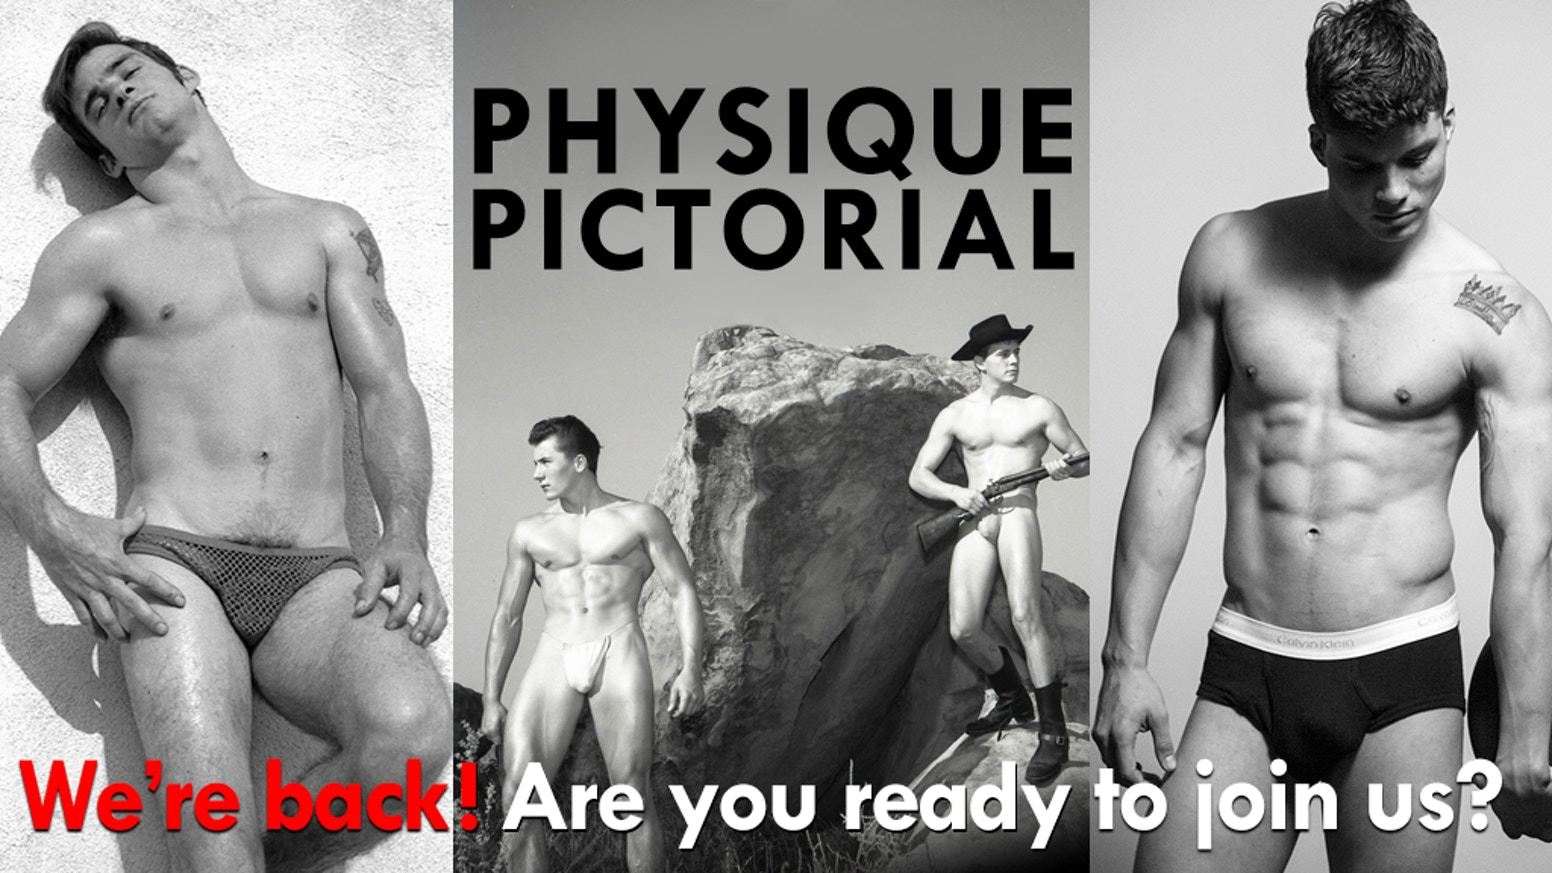 You've been waiting 27 years since the last issue. The wait is over. Help us launch Physique Pictorial magazine for a new generation.